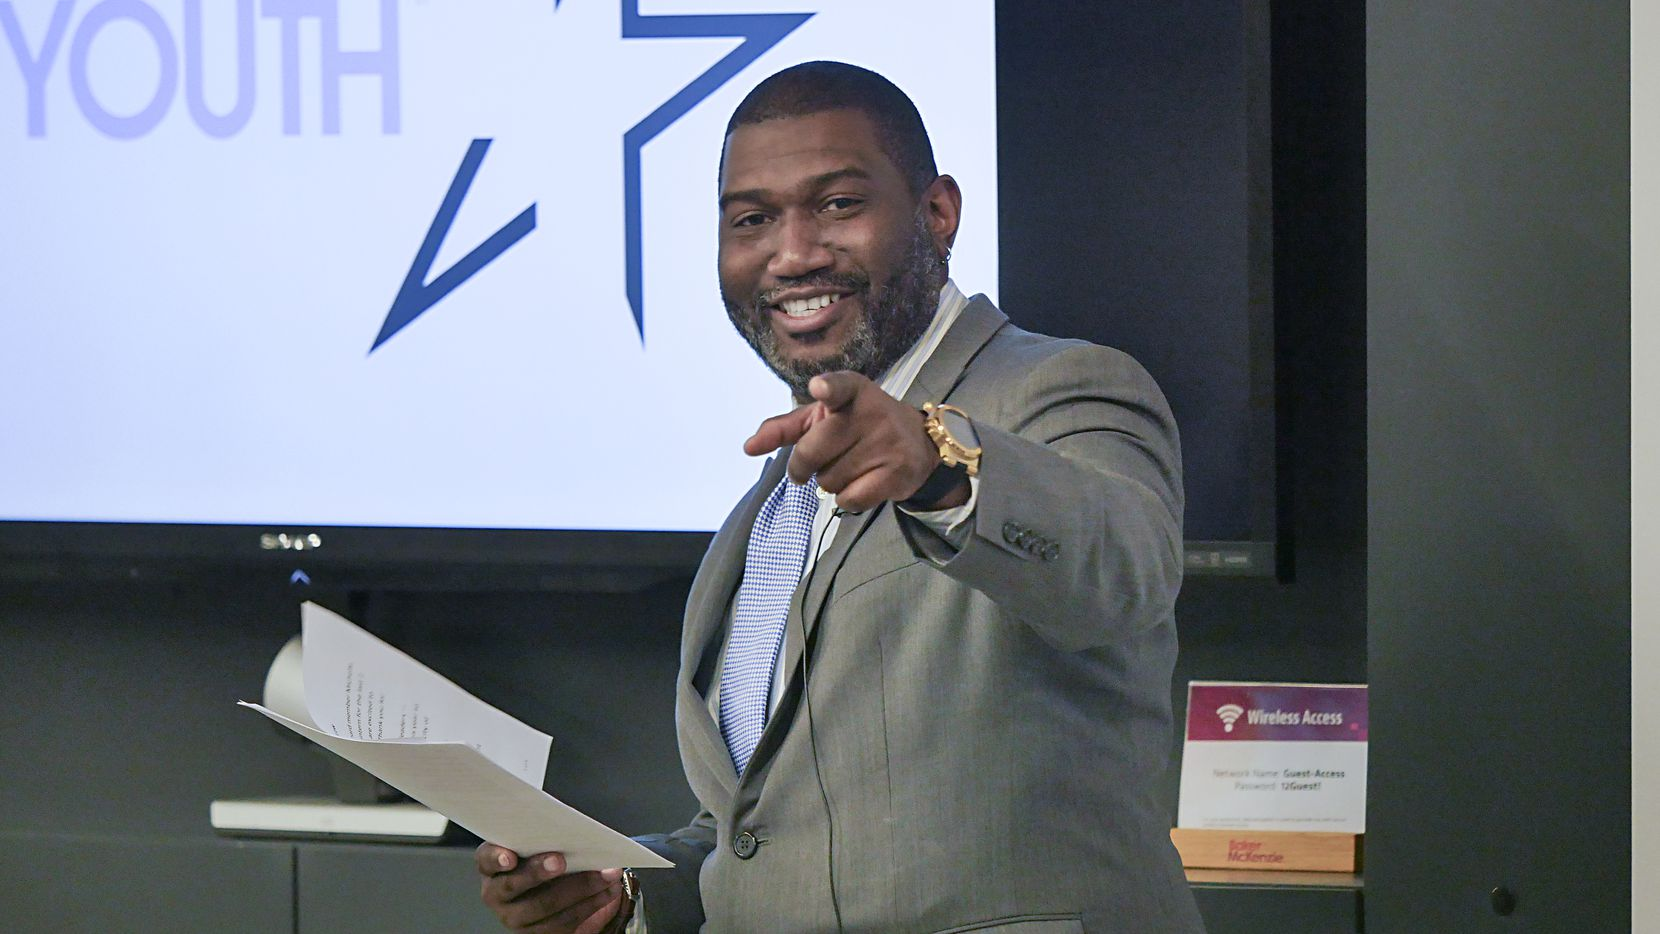 Antoine Joyce, vice president and city leader of the All Stars Project of Dallas, spoke at a February 2020 orientation event for participants in the group's Development School for Youth program.